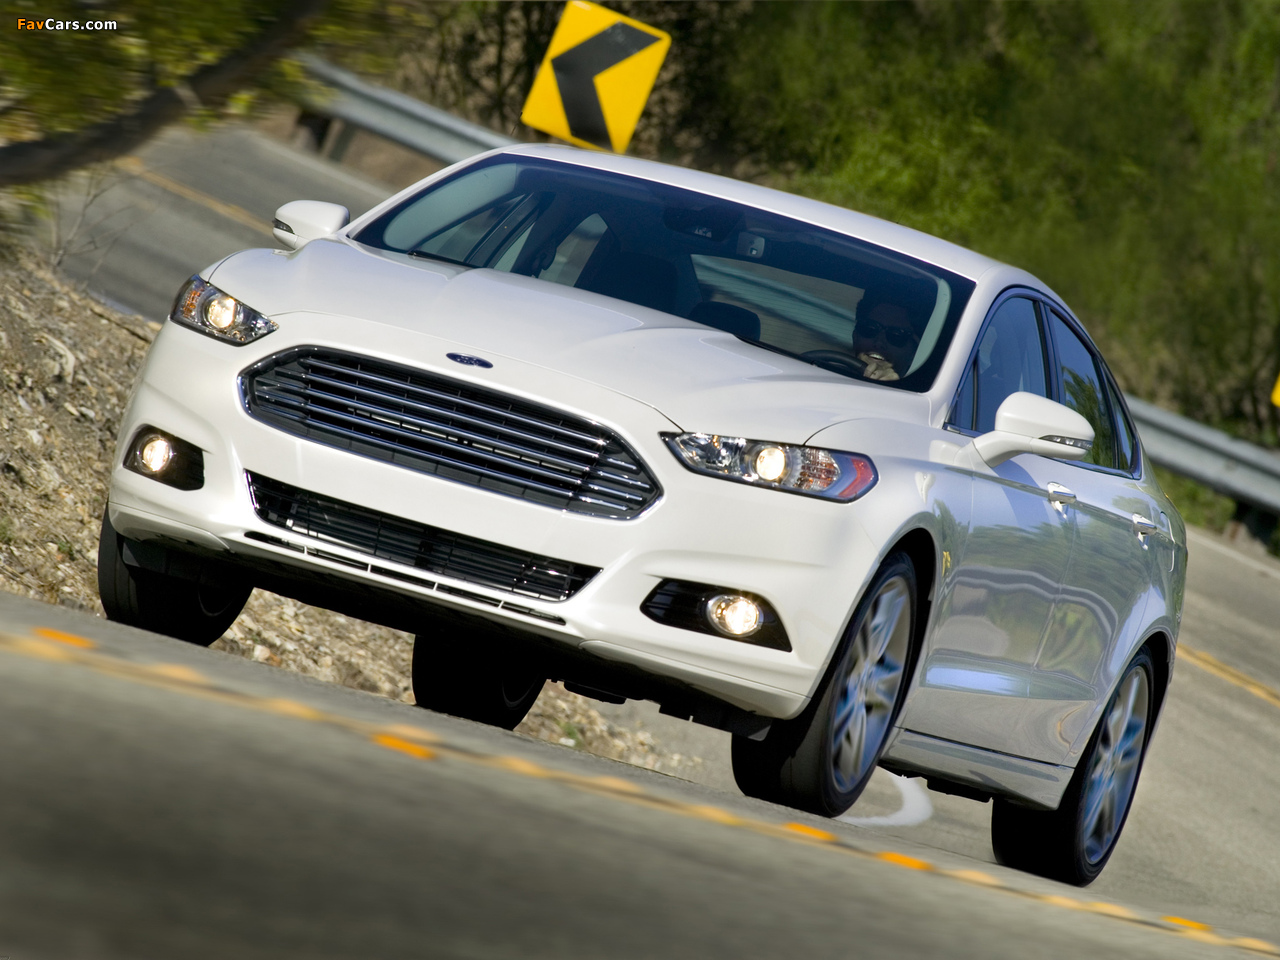 Ford Fusion 2012 wallpapers (1280 x 960)